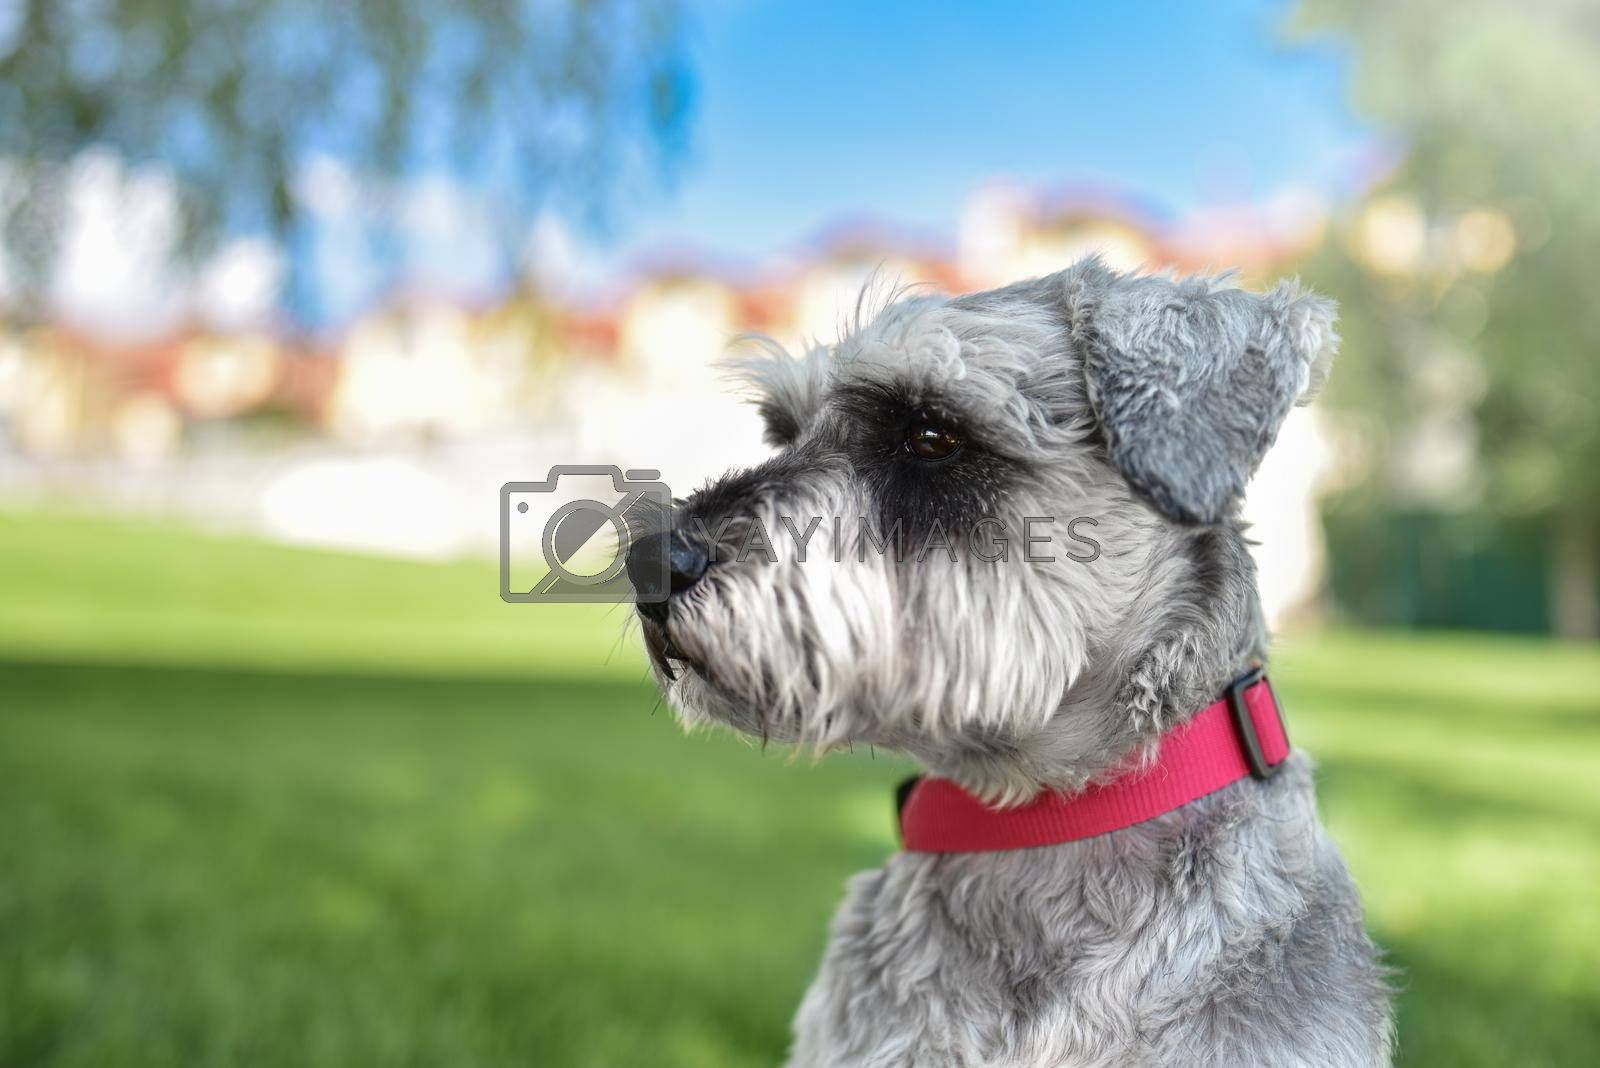 portrait of a beautiful dog schnauzer sitting on the grass and looking into the distance in the park.The concept of love for animals. best friends. by Nickstock